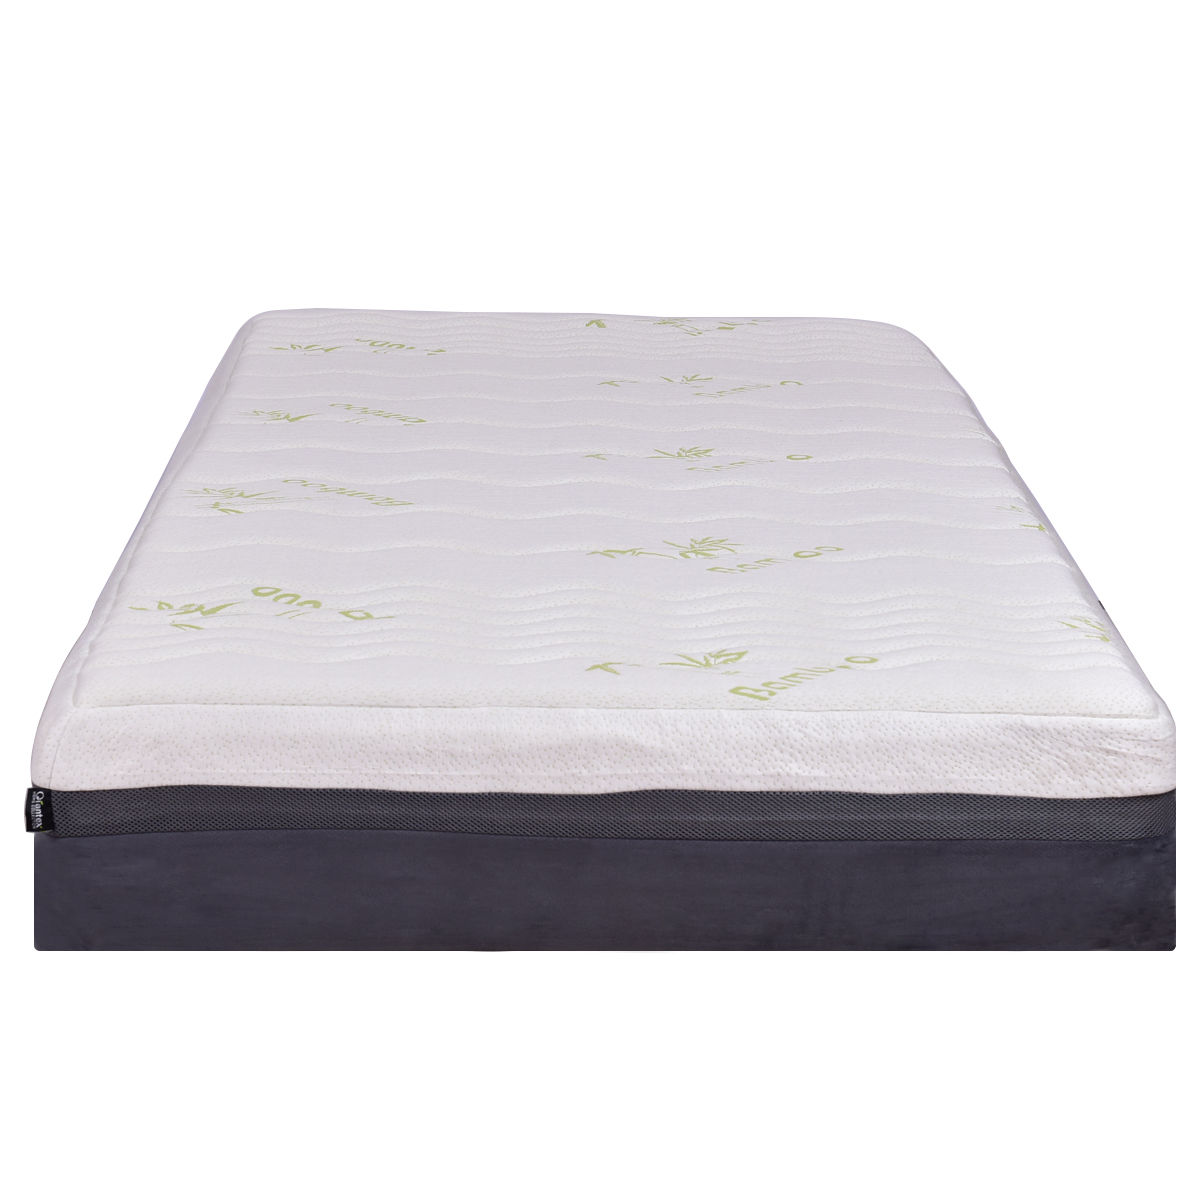 Latex foam mattress california consider